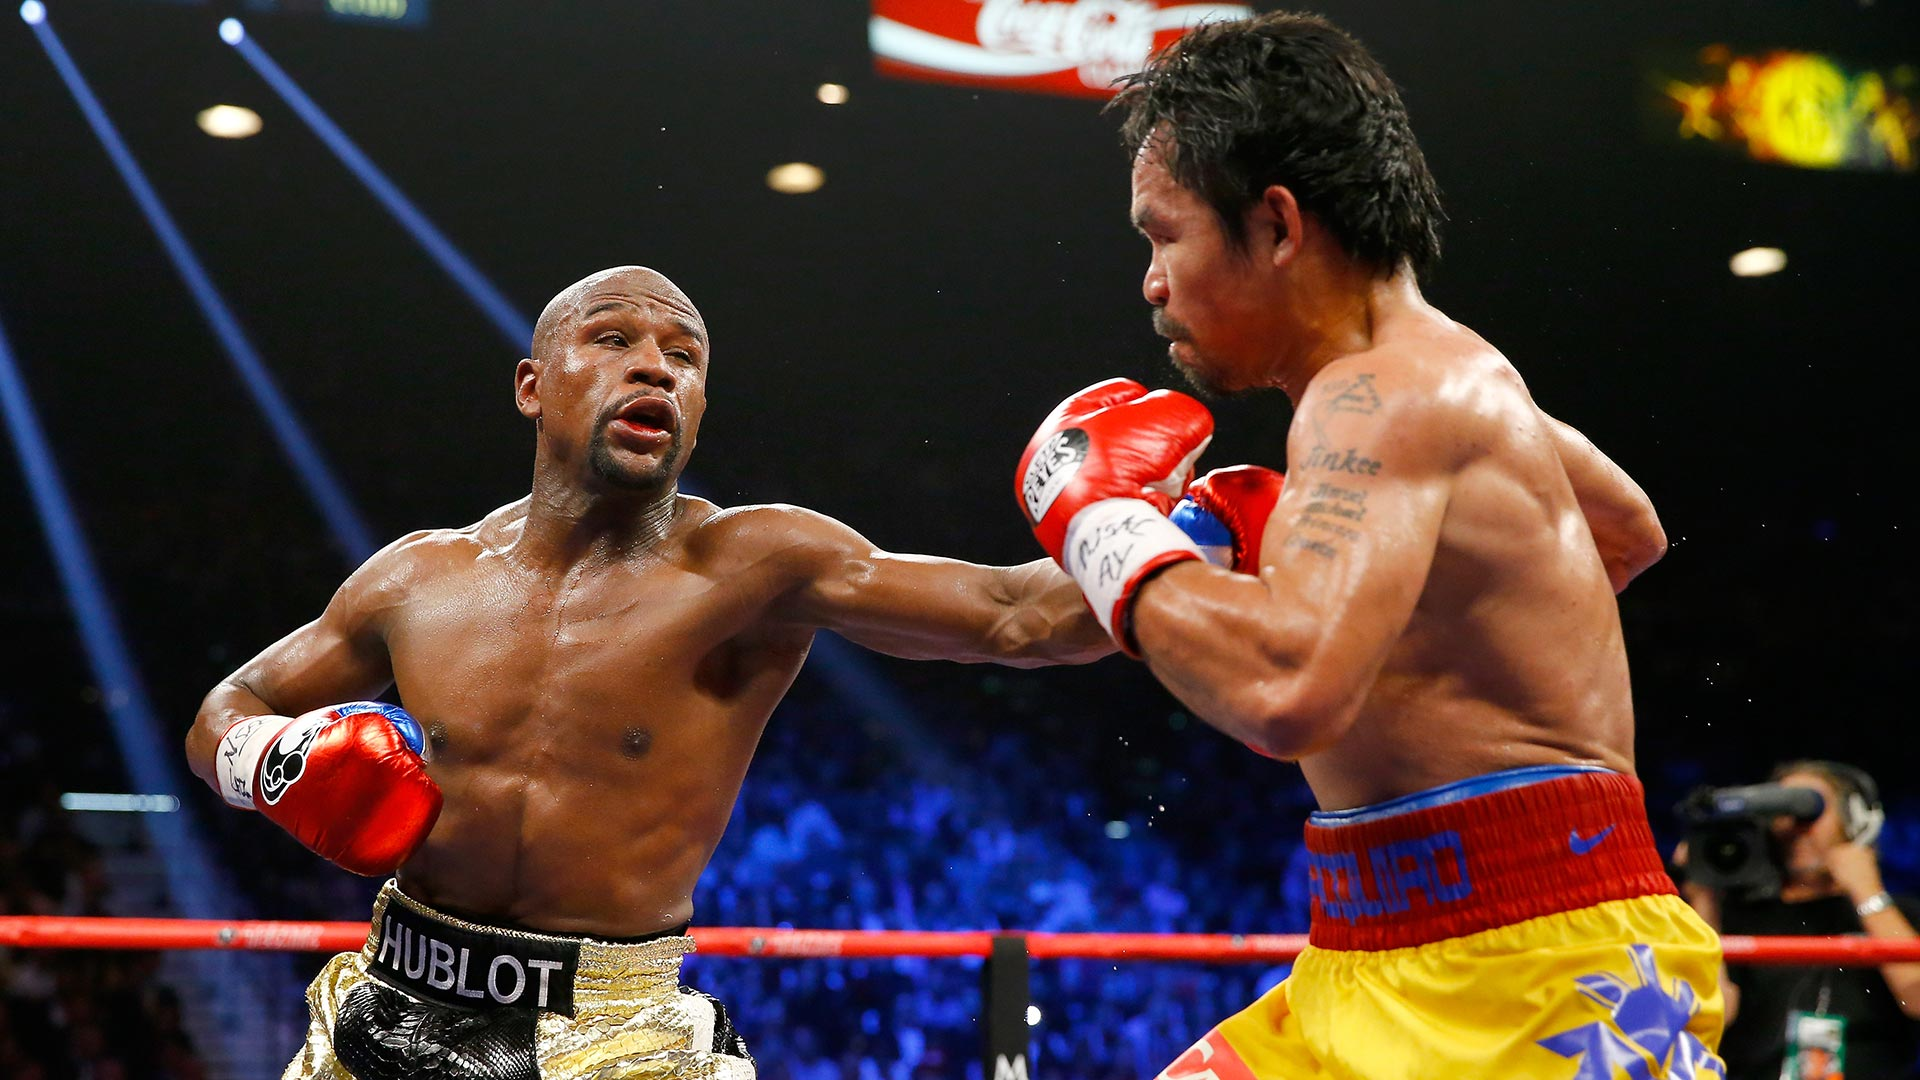 Reportan avances importantes en Mayweather- Manny Pacquiao 2